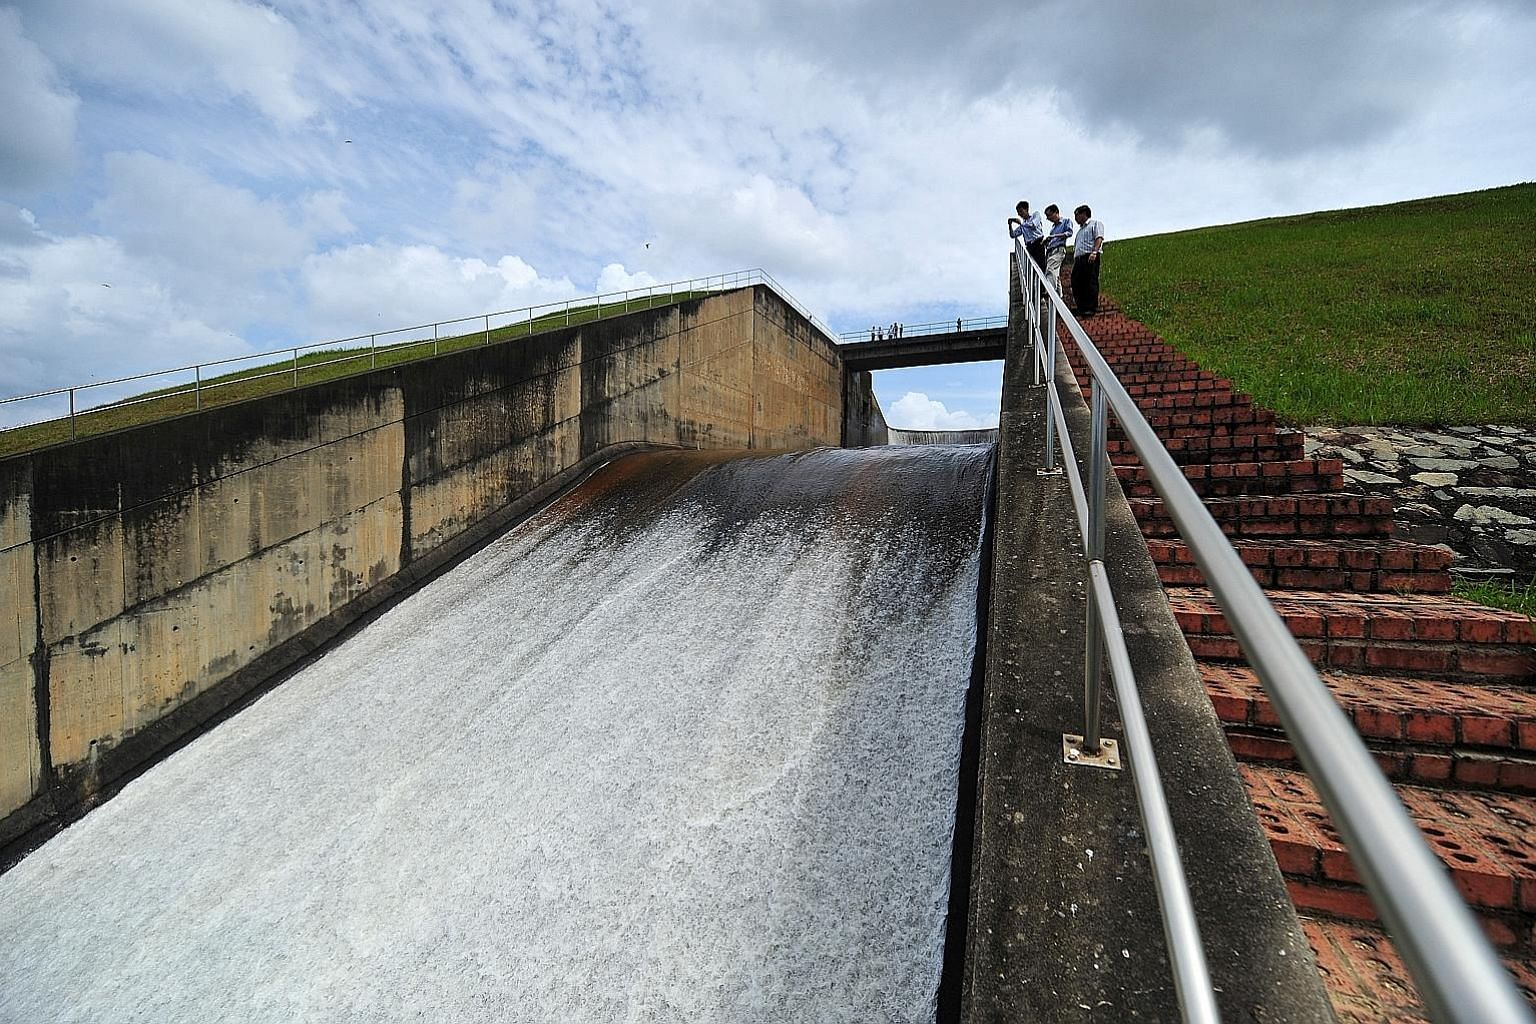 The Linggiu Reservoir in Johor. Under the 1962 Water Agreement between Malaysia and Singapore, the Republic is entitled to draw up to 250 million gallons a day of raw water from the Johor River, at three sen per 1,000 gallons. The agreement expires i